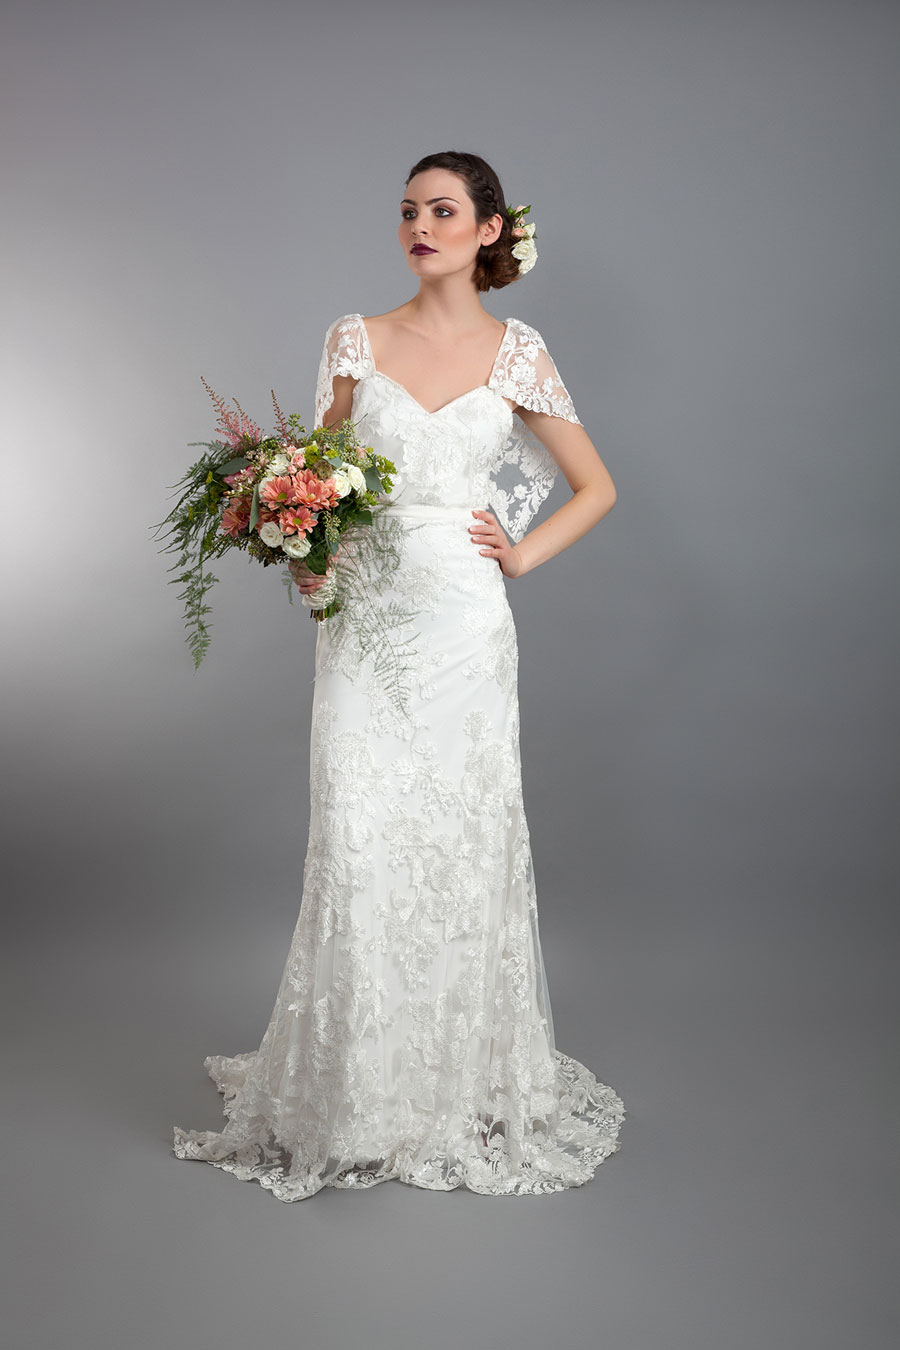 Shanna Melville Launches 2017 Bridal Collection- Wildflowers! (and it's so pretty)0017